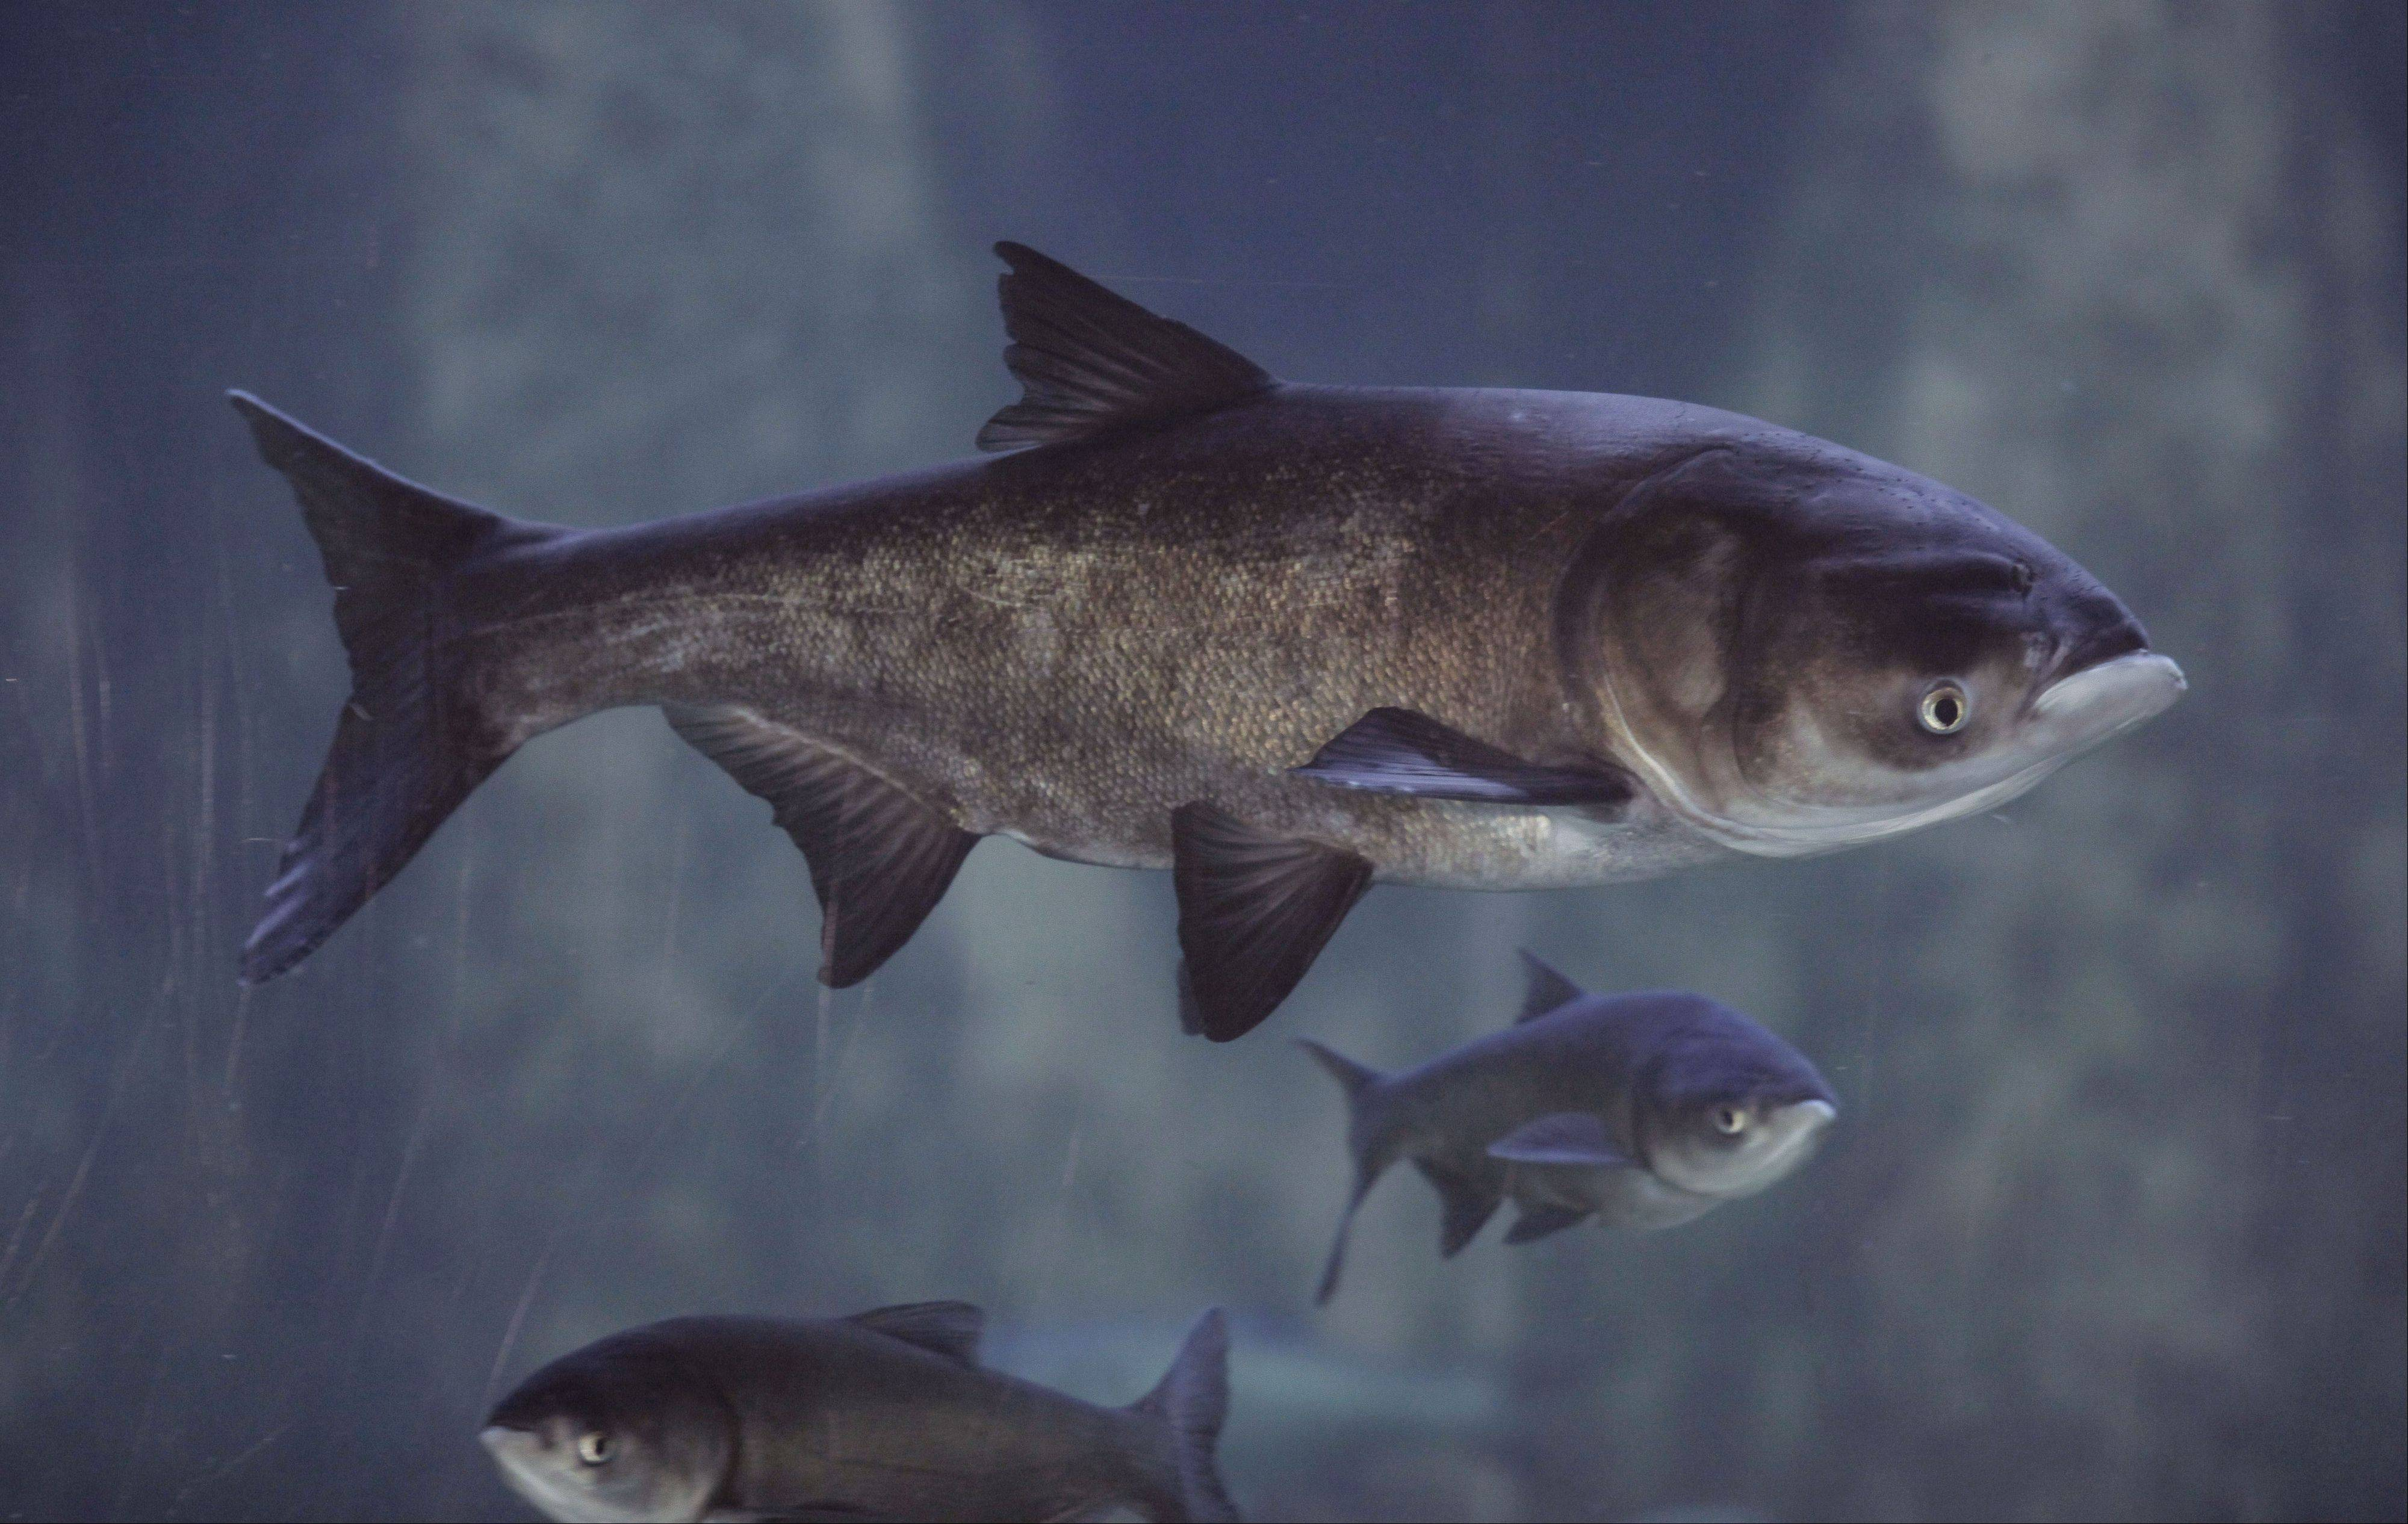 Scientists fear the voracious Asian carp eventually could crowd out native species in the Great Lakes, endangering the region's $7 billion fishing industry.